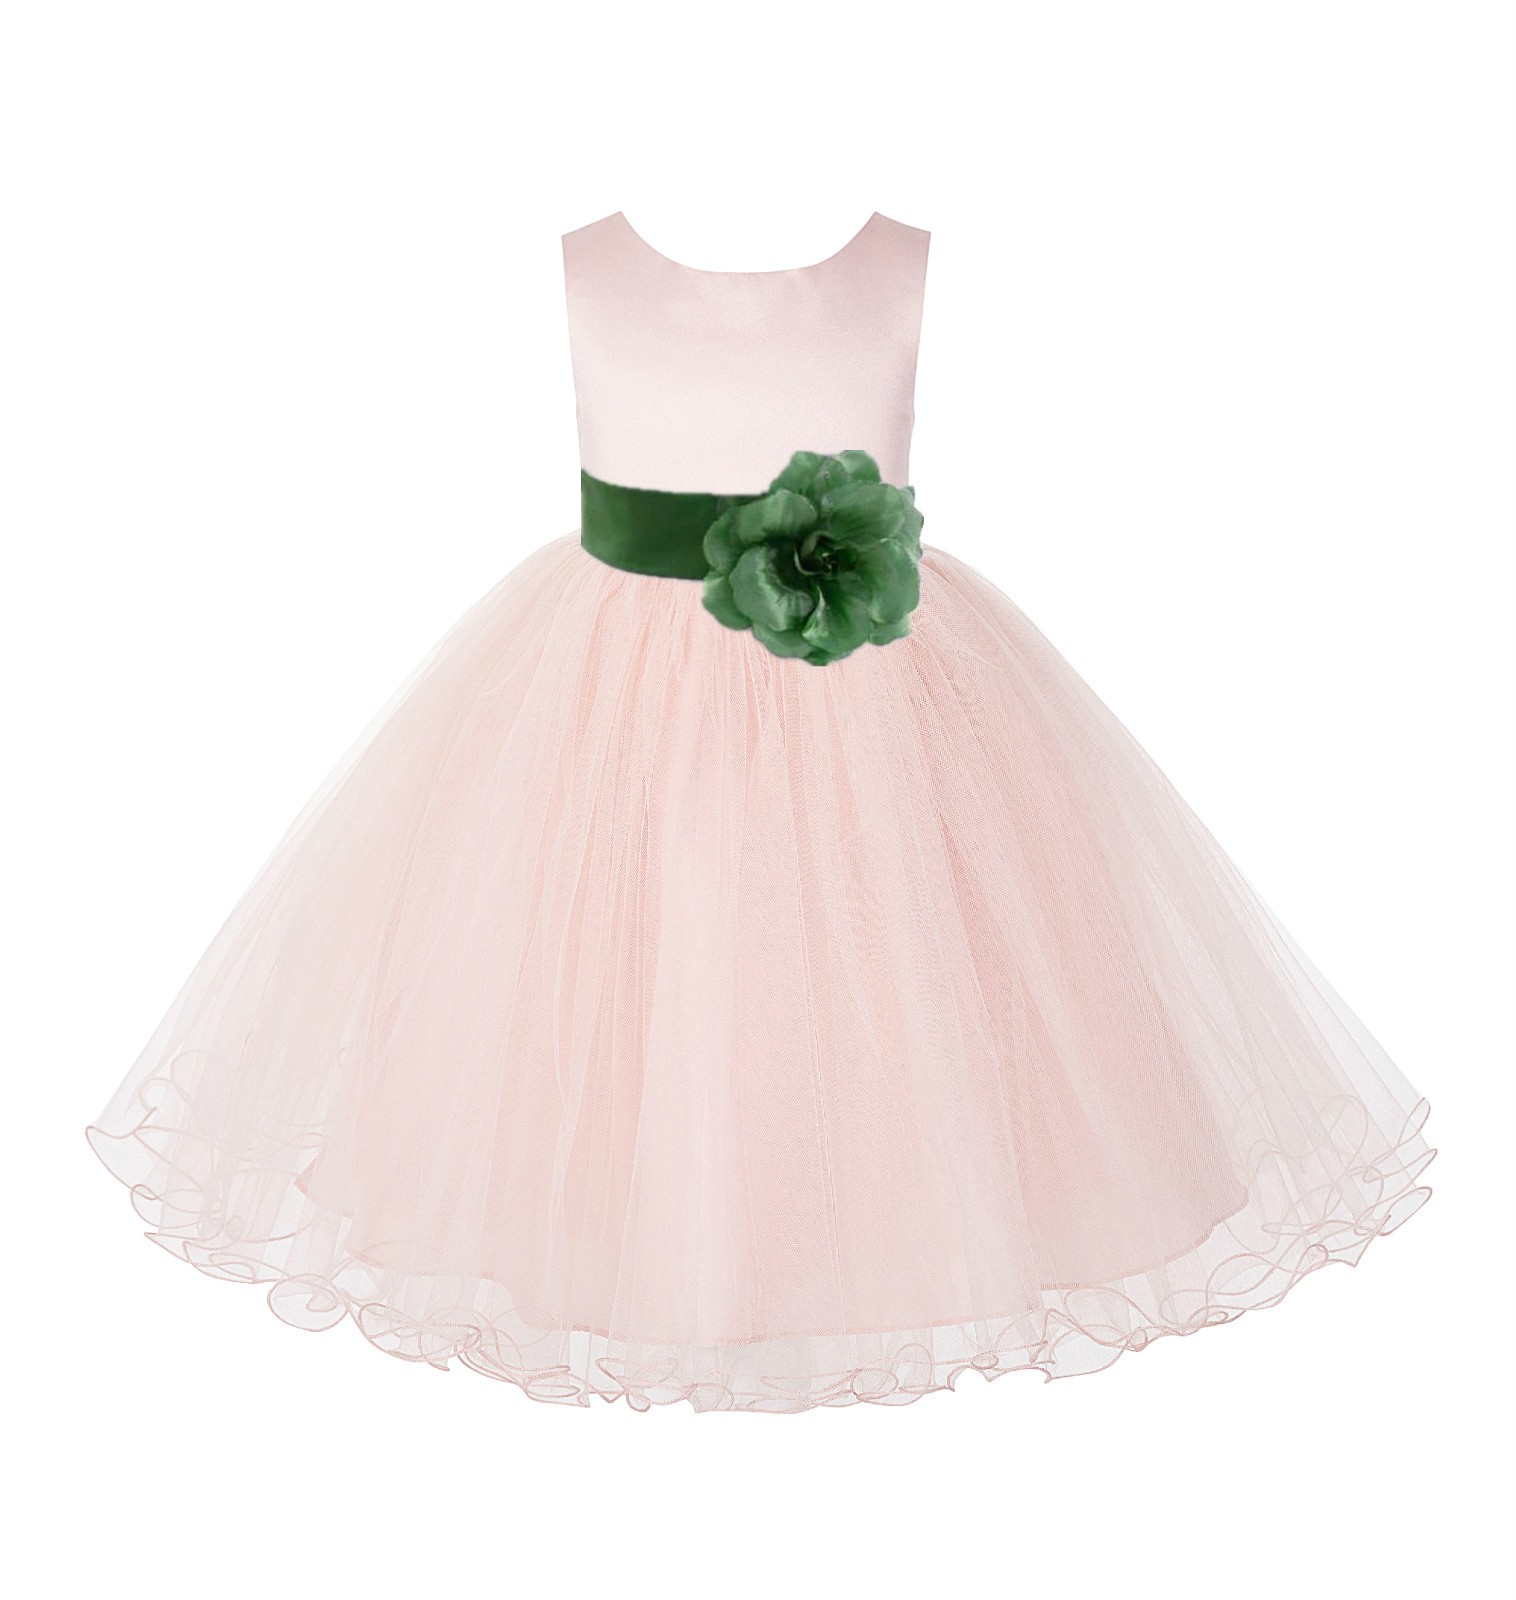 Blush PInk / Clover Tulle Rattail Edge Flower Girl Dress Wedding Bridesmaid 829T